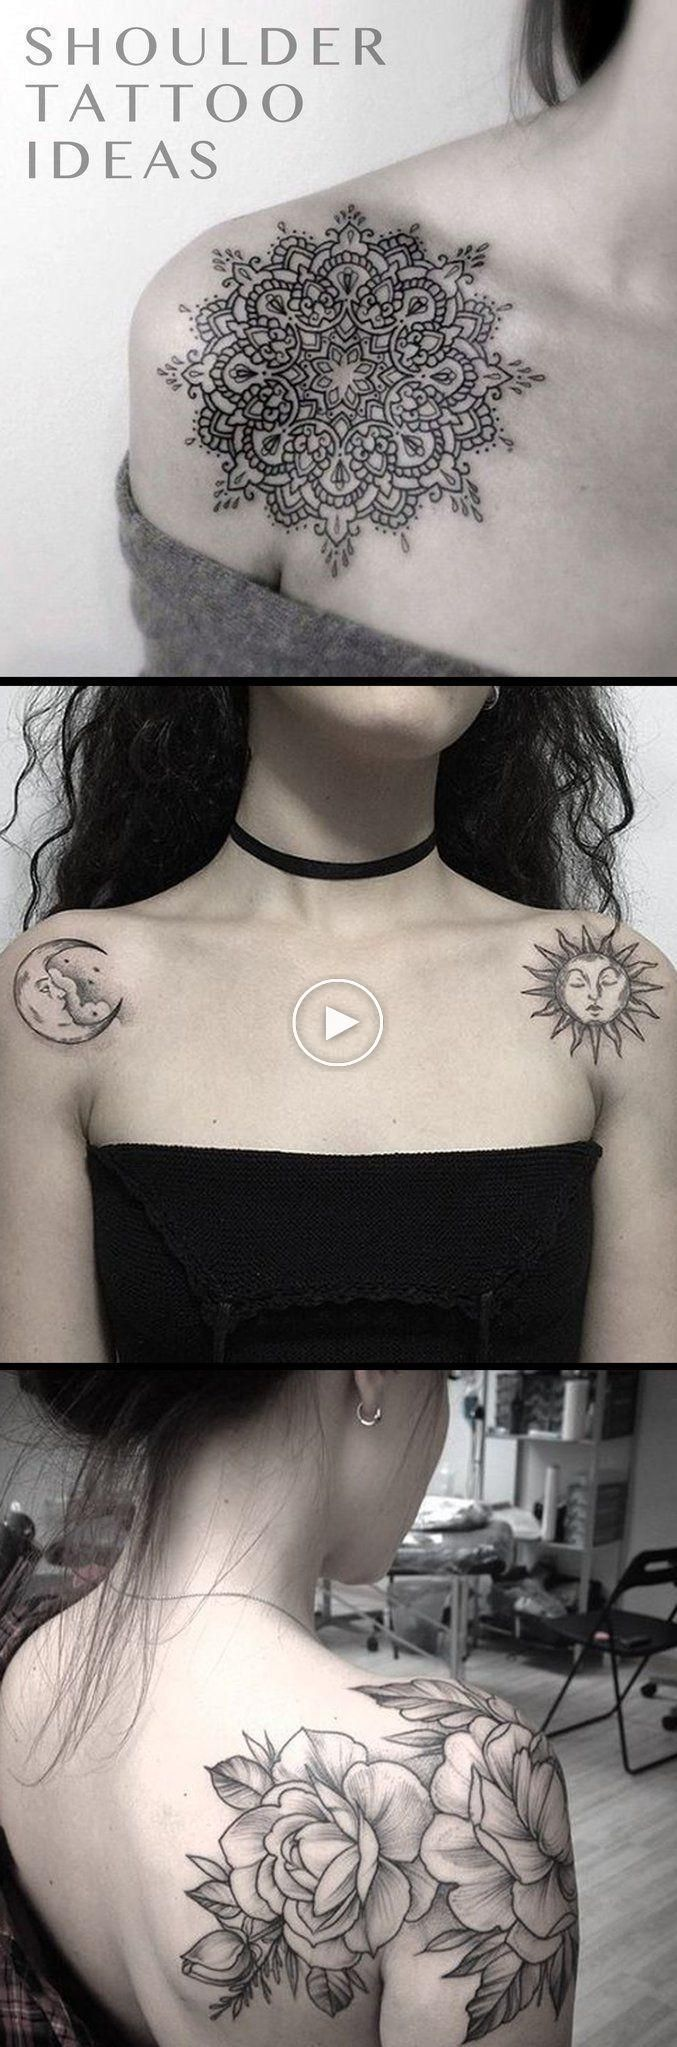 unique geometric tattoo popular shoulder tattoo ideas for woman black and white # … #flower…